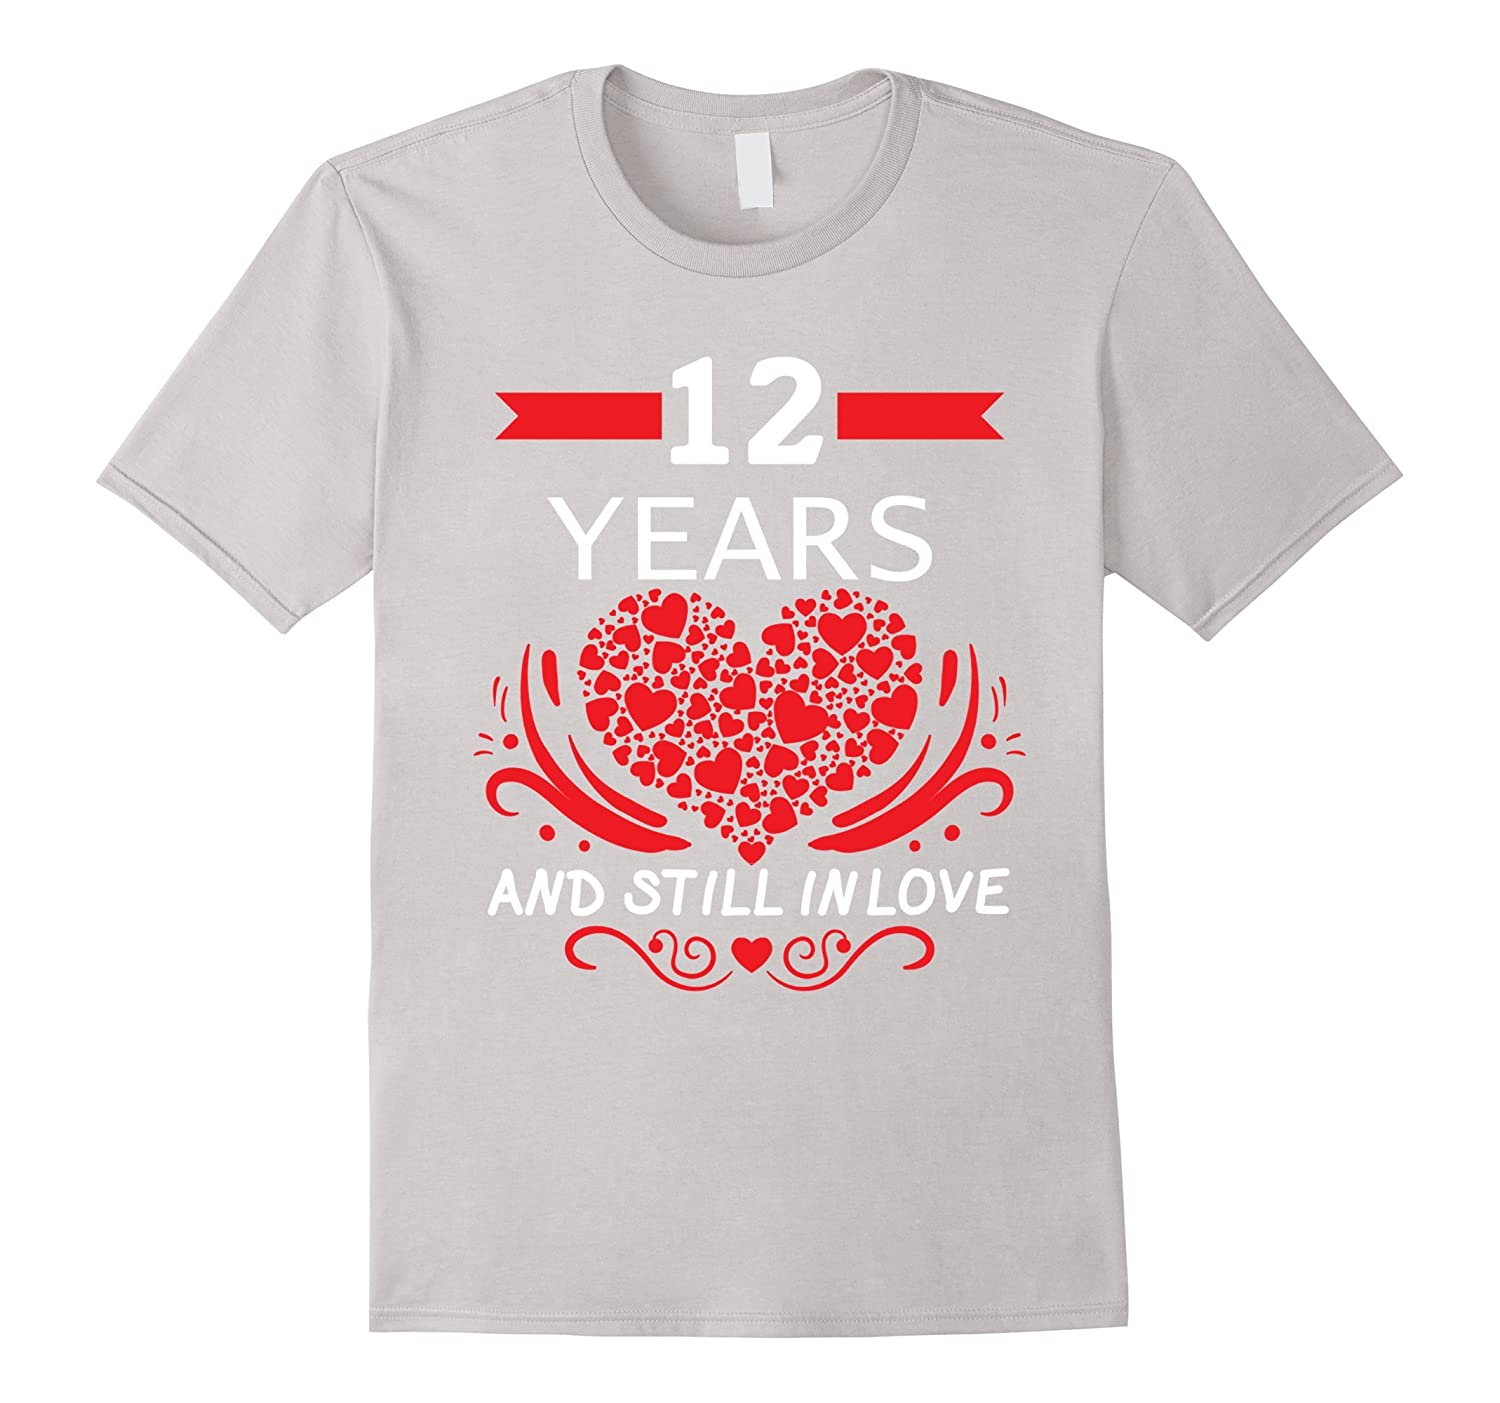 Gift For 12 Year Wedding Anniversary: 12th Wedding Anniversary Gifts 12 Year Shirt For Him And